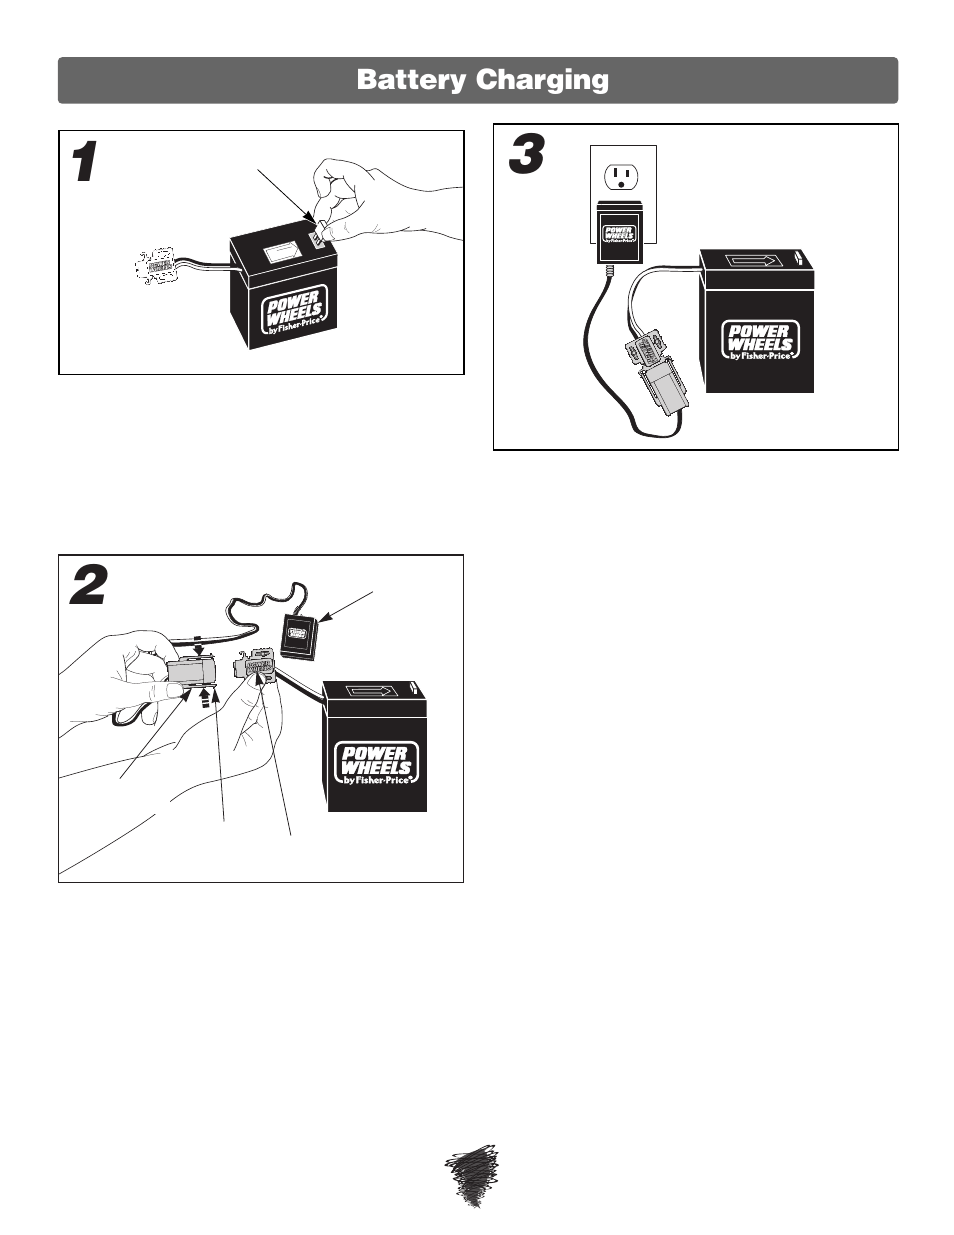 medium resolution of battery charging fisher price wild thing 74180 user manual page 8 28